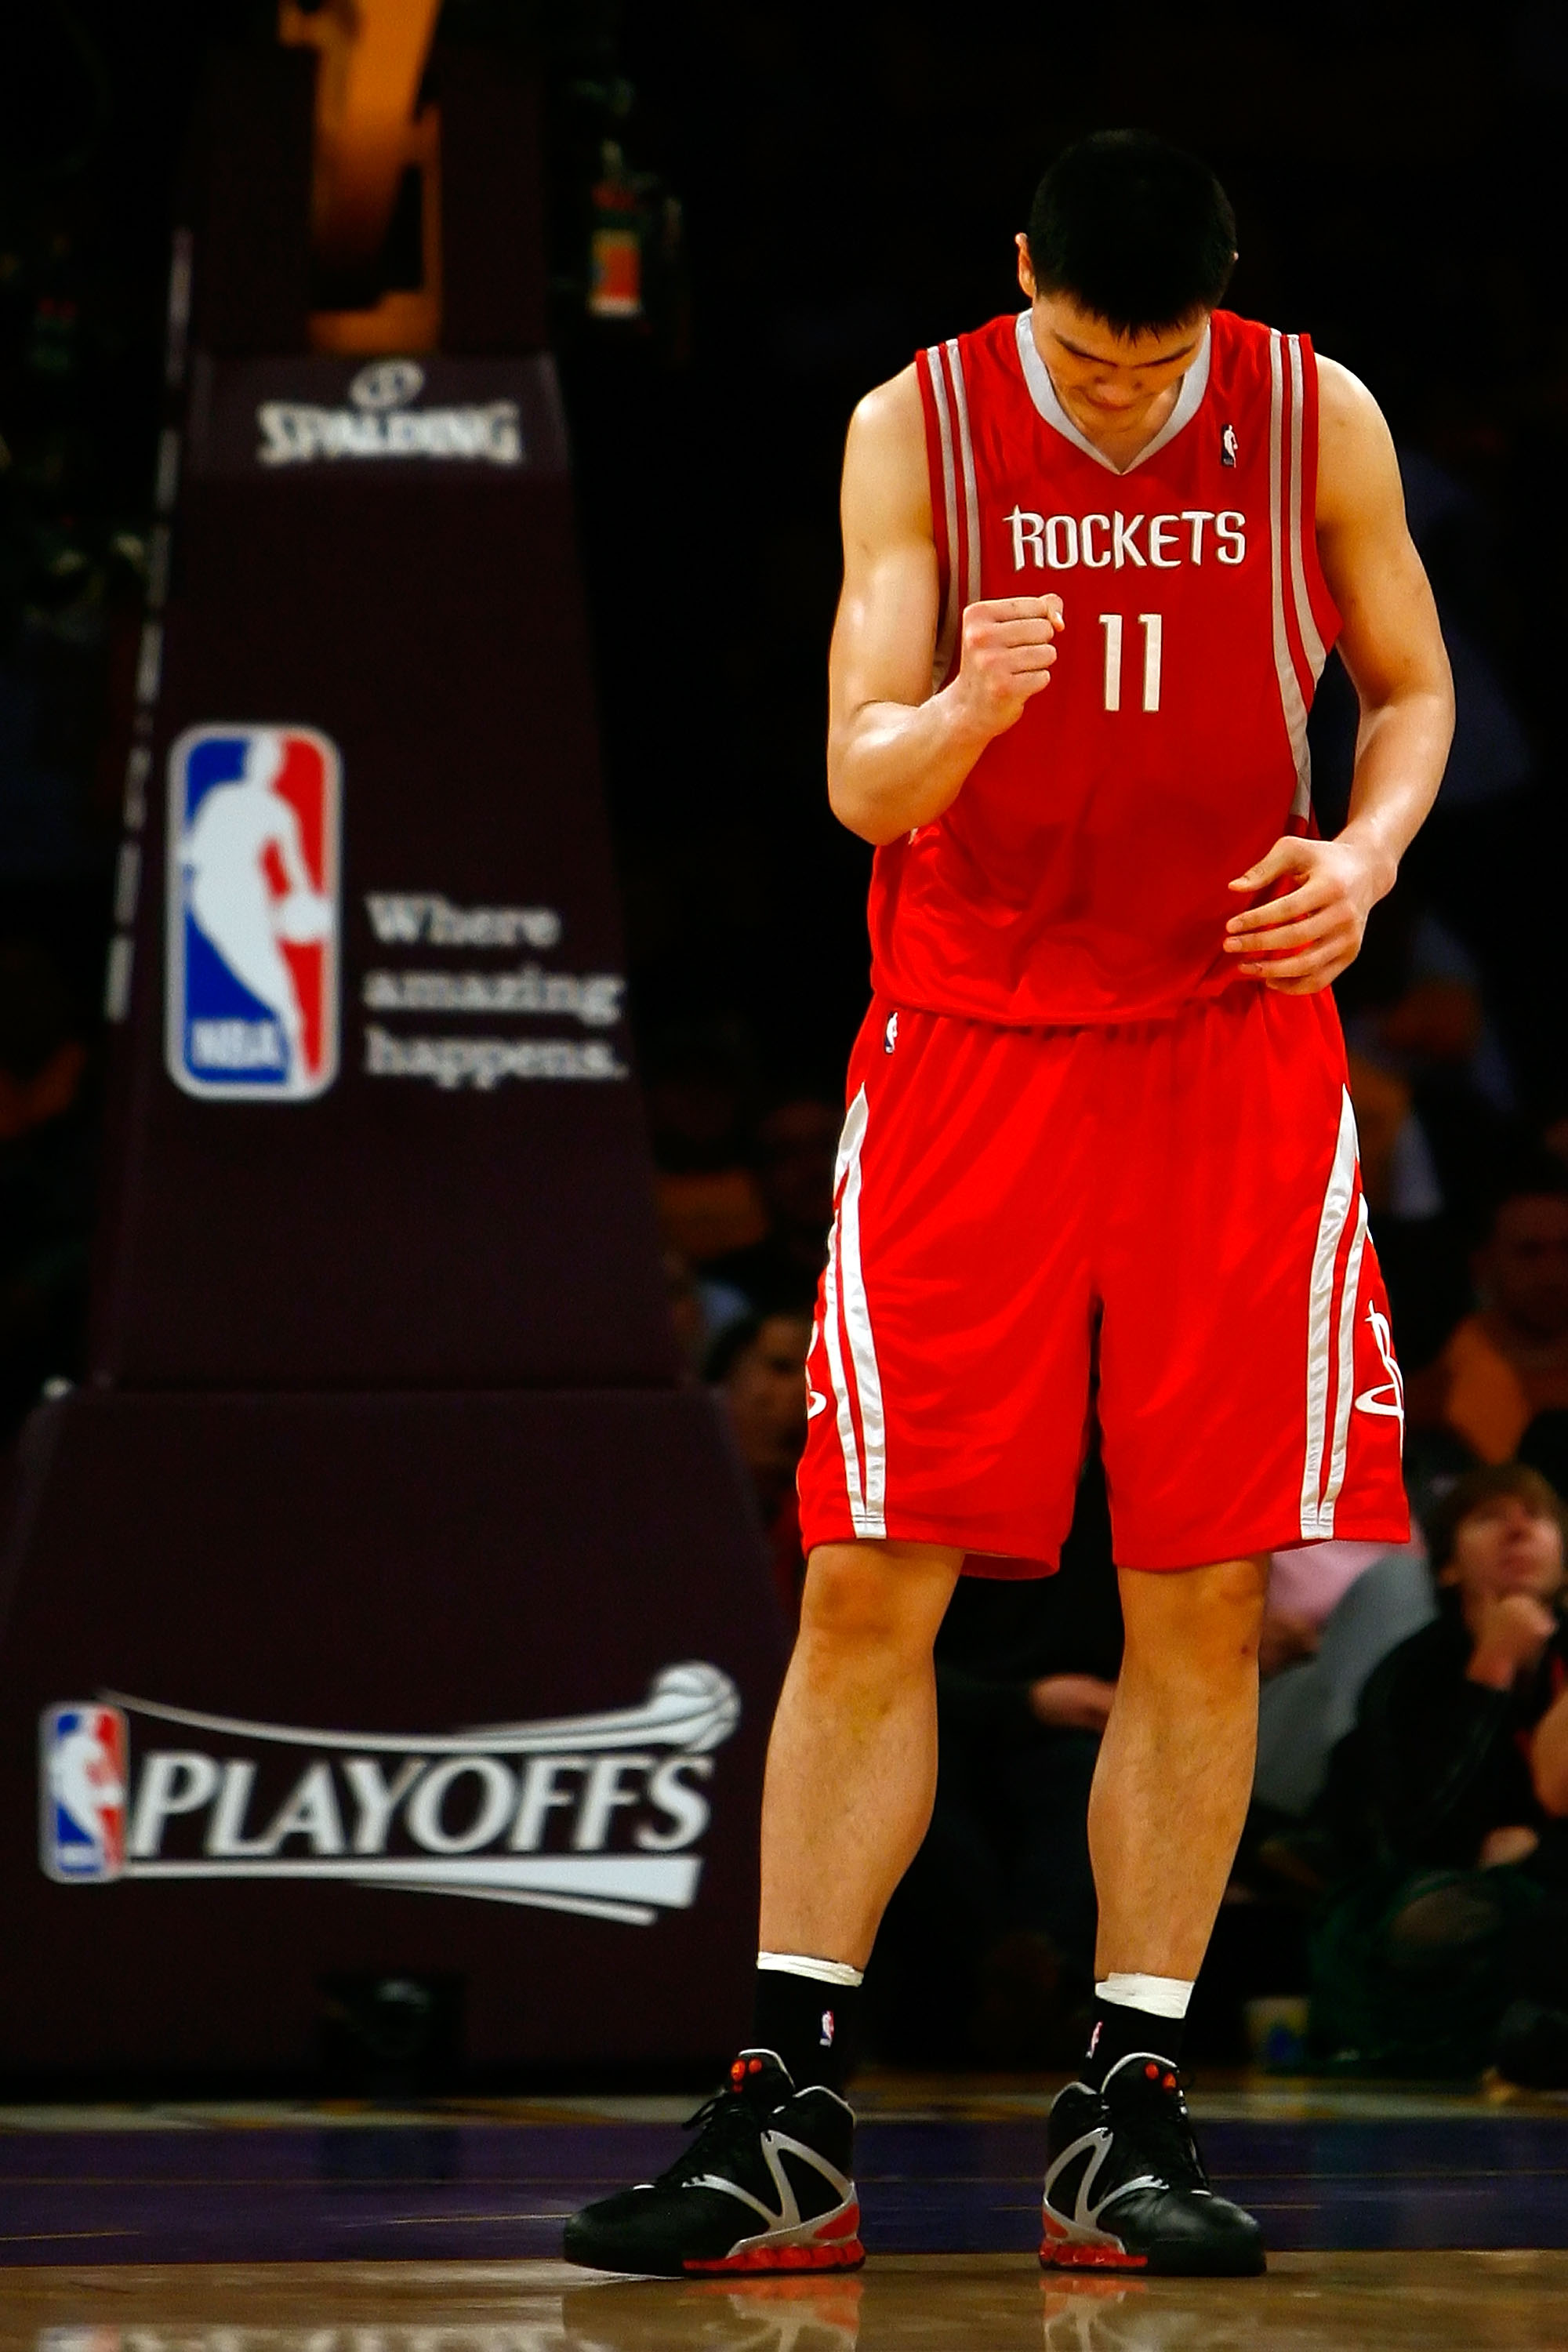 Yao Ming: Why This Will Be the Year Hes Proven To Be a